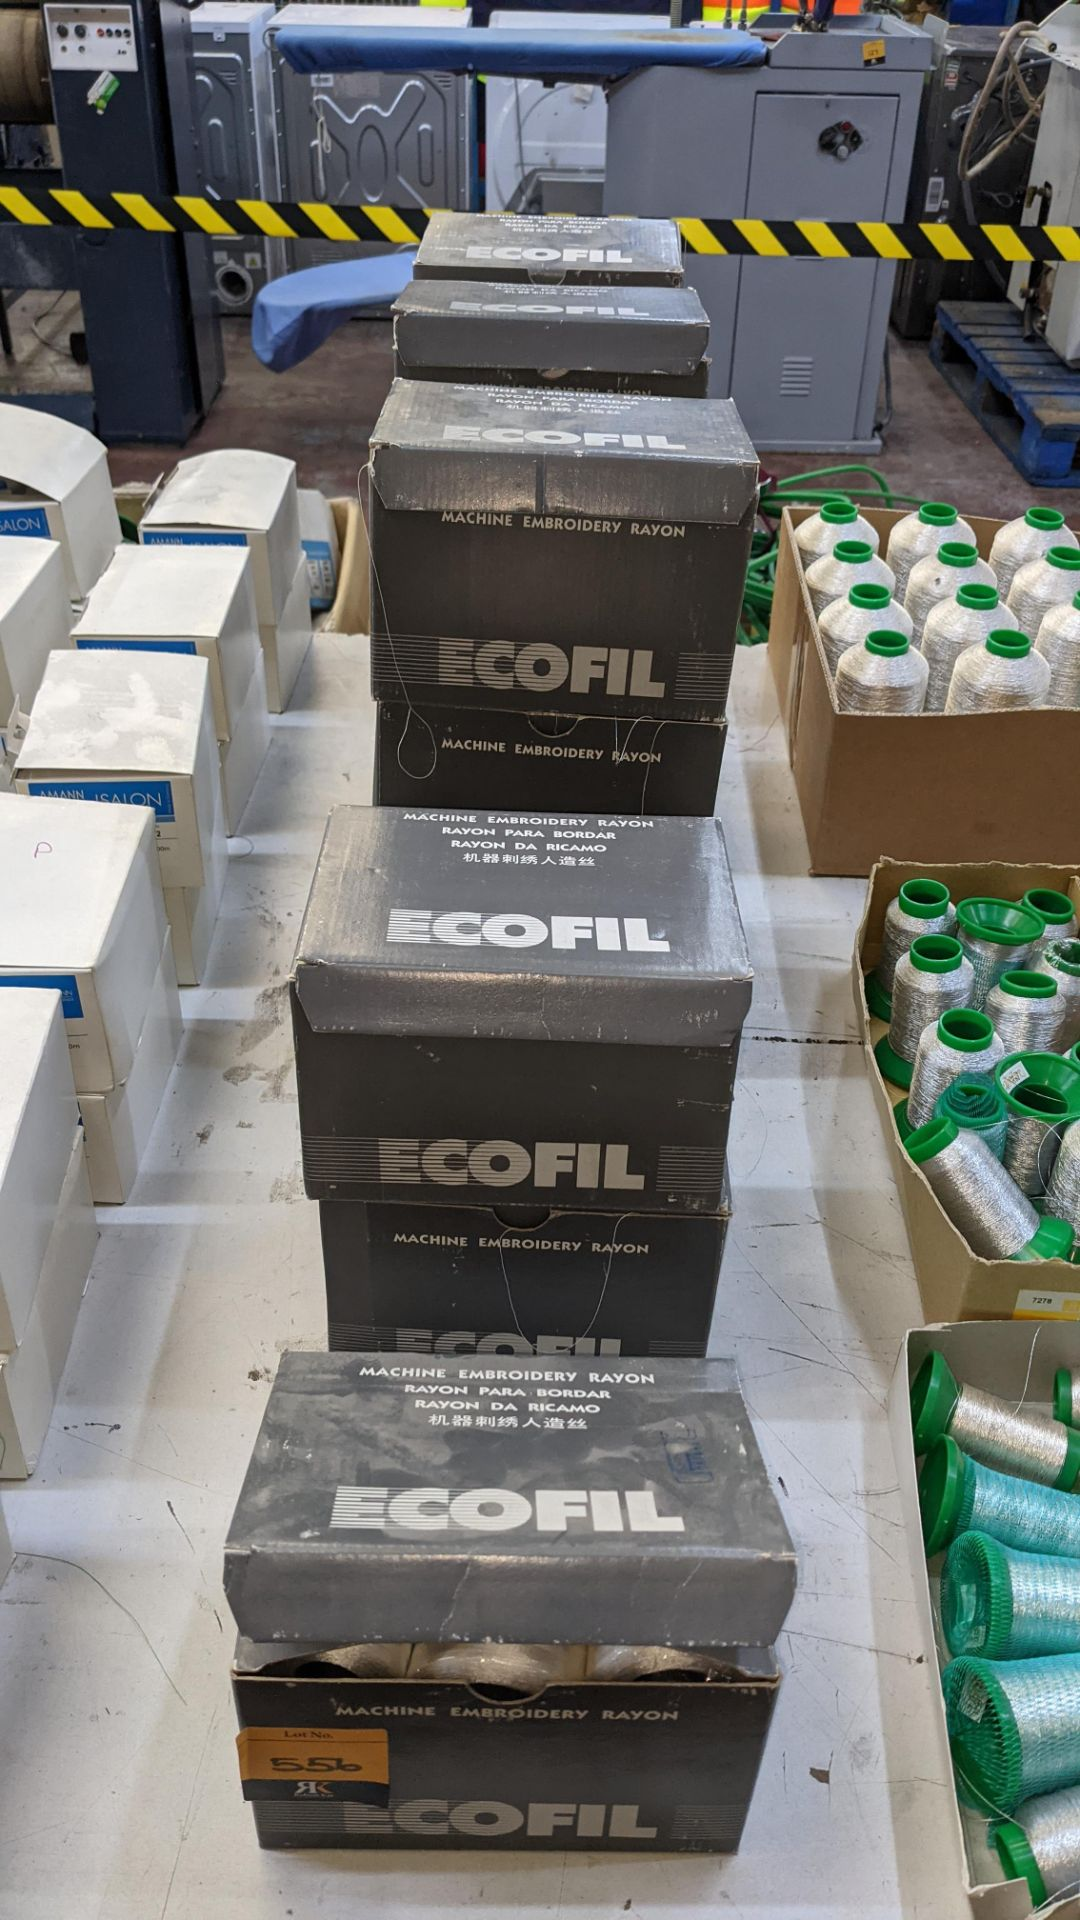 12 boxes of Ecofil rayon machine embroidery thread, all in white